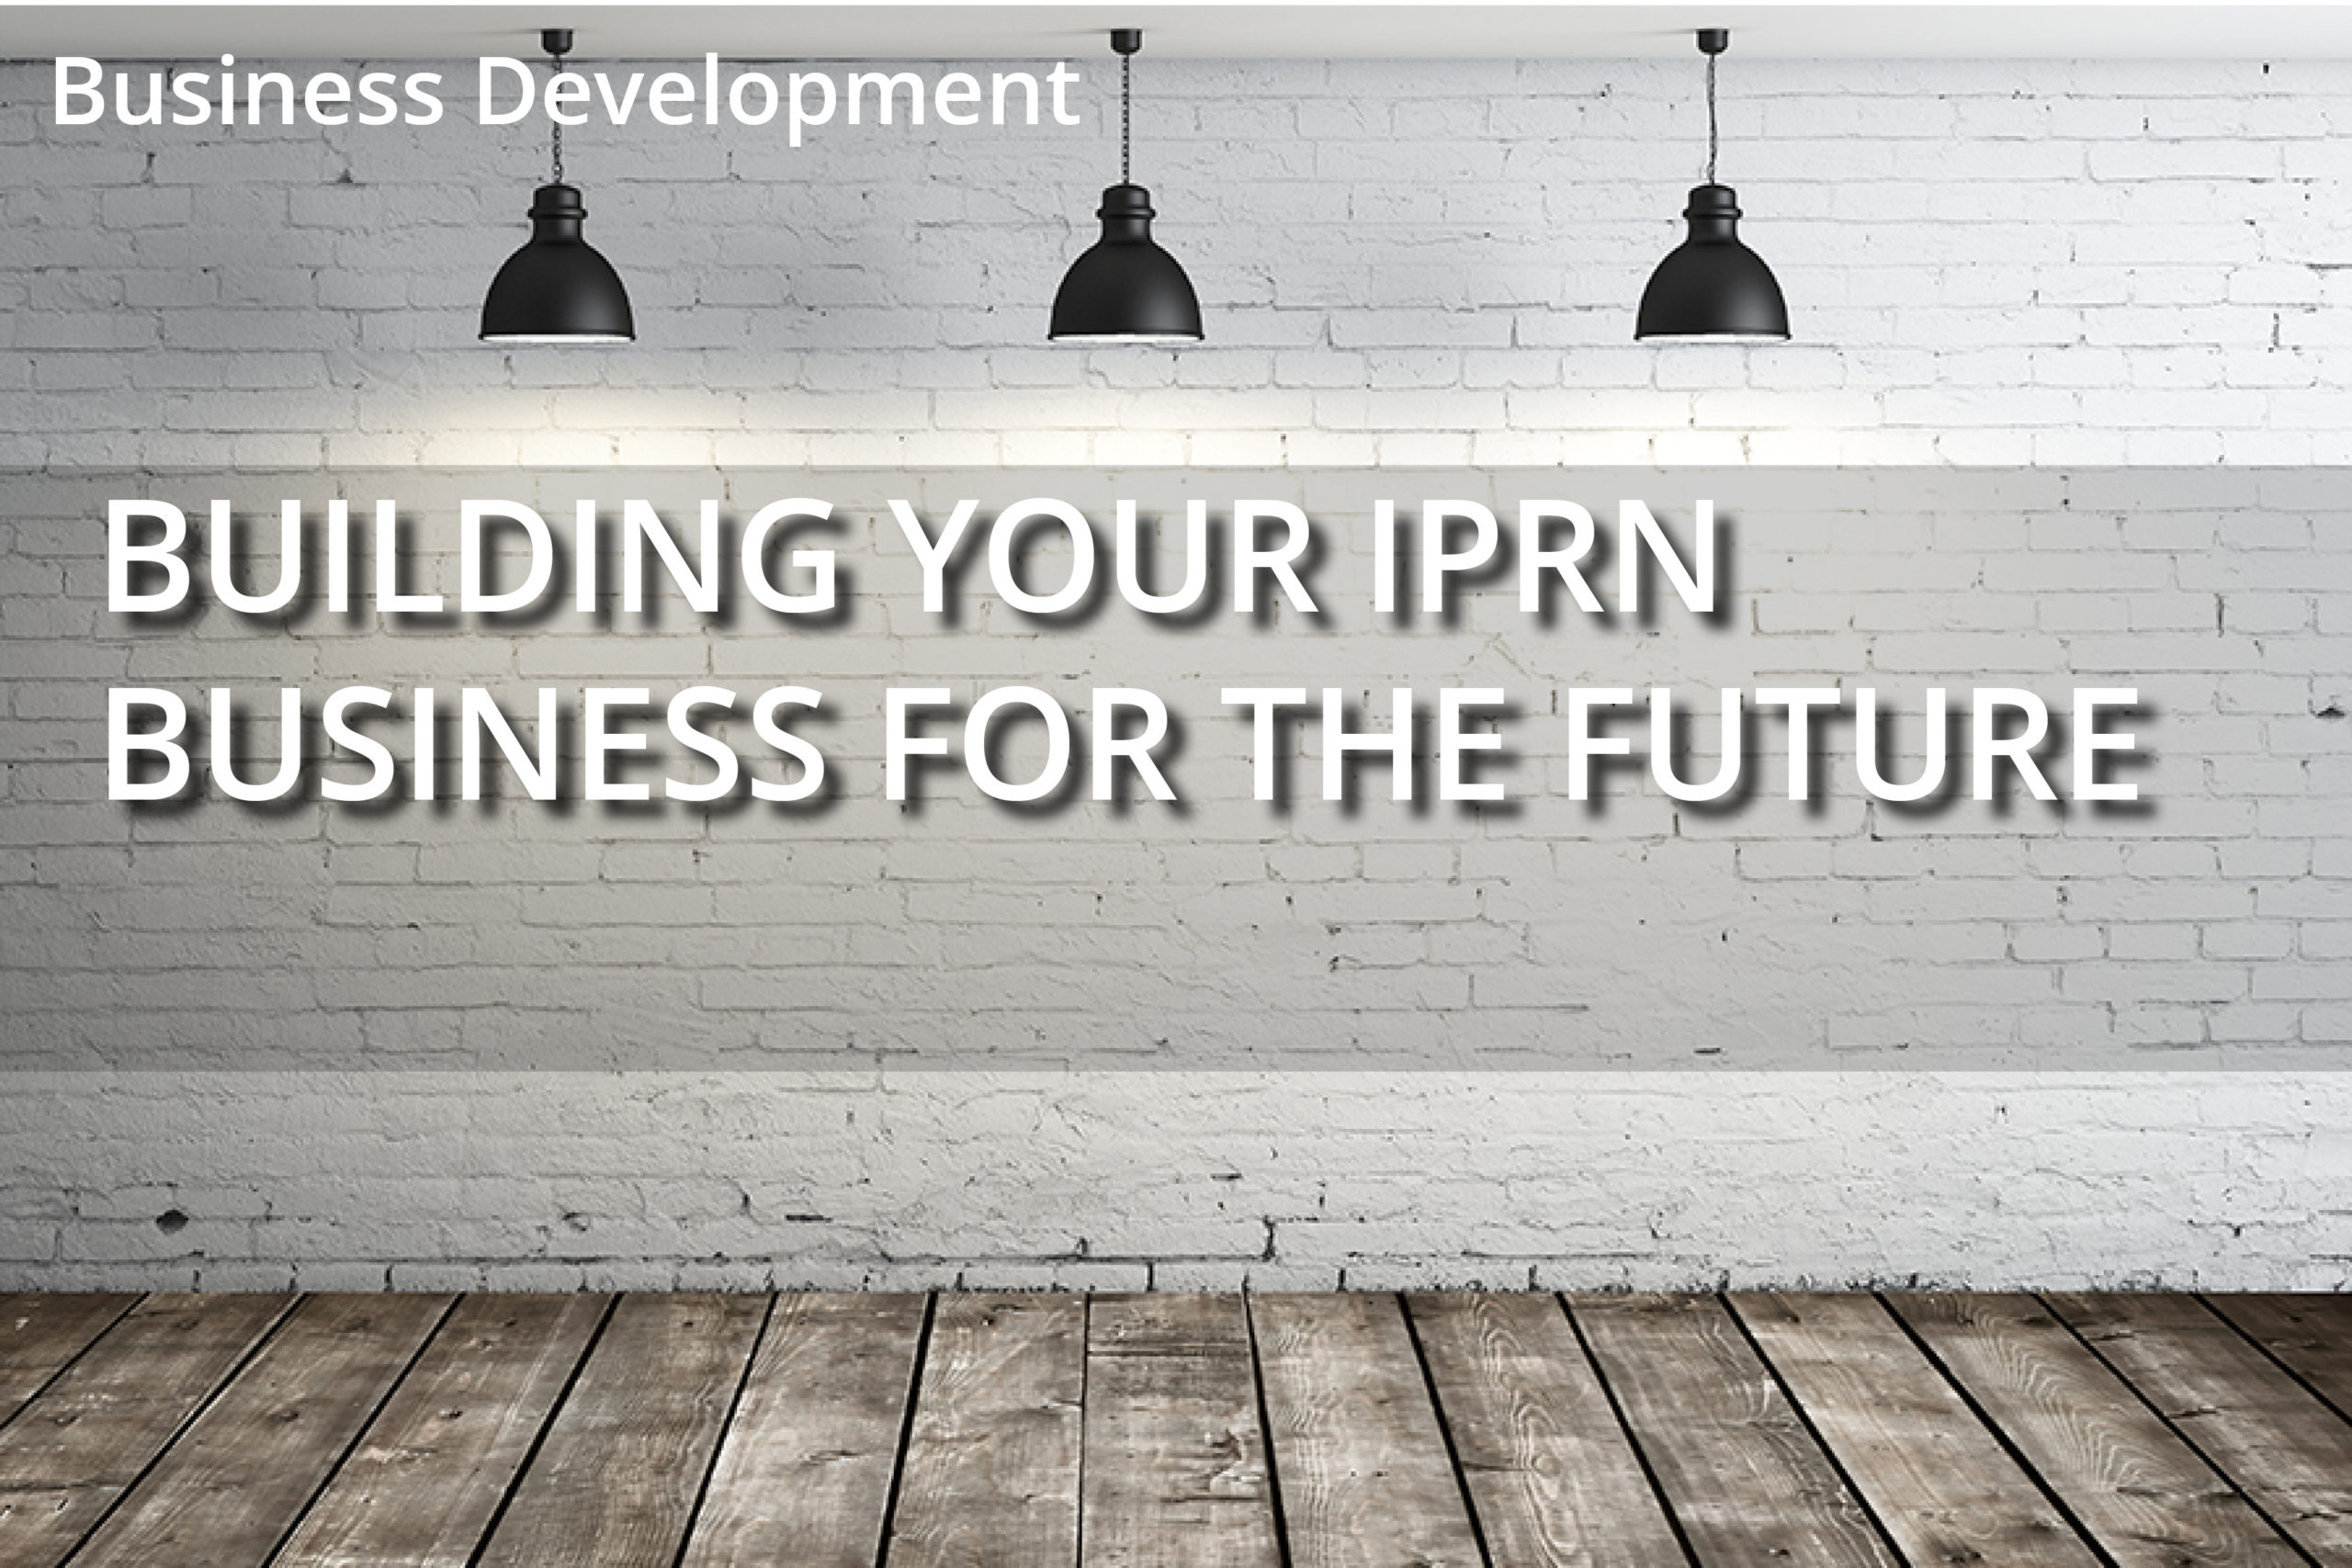 Building Your IPRN Business for the Future